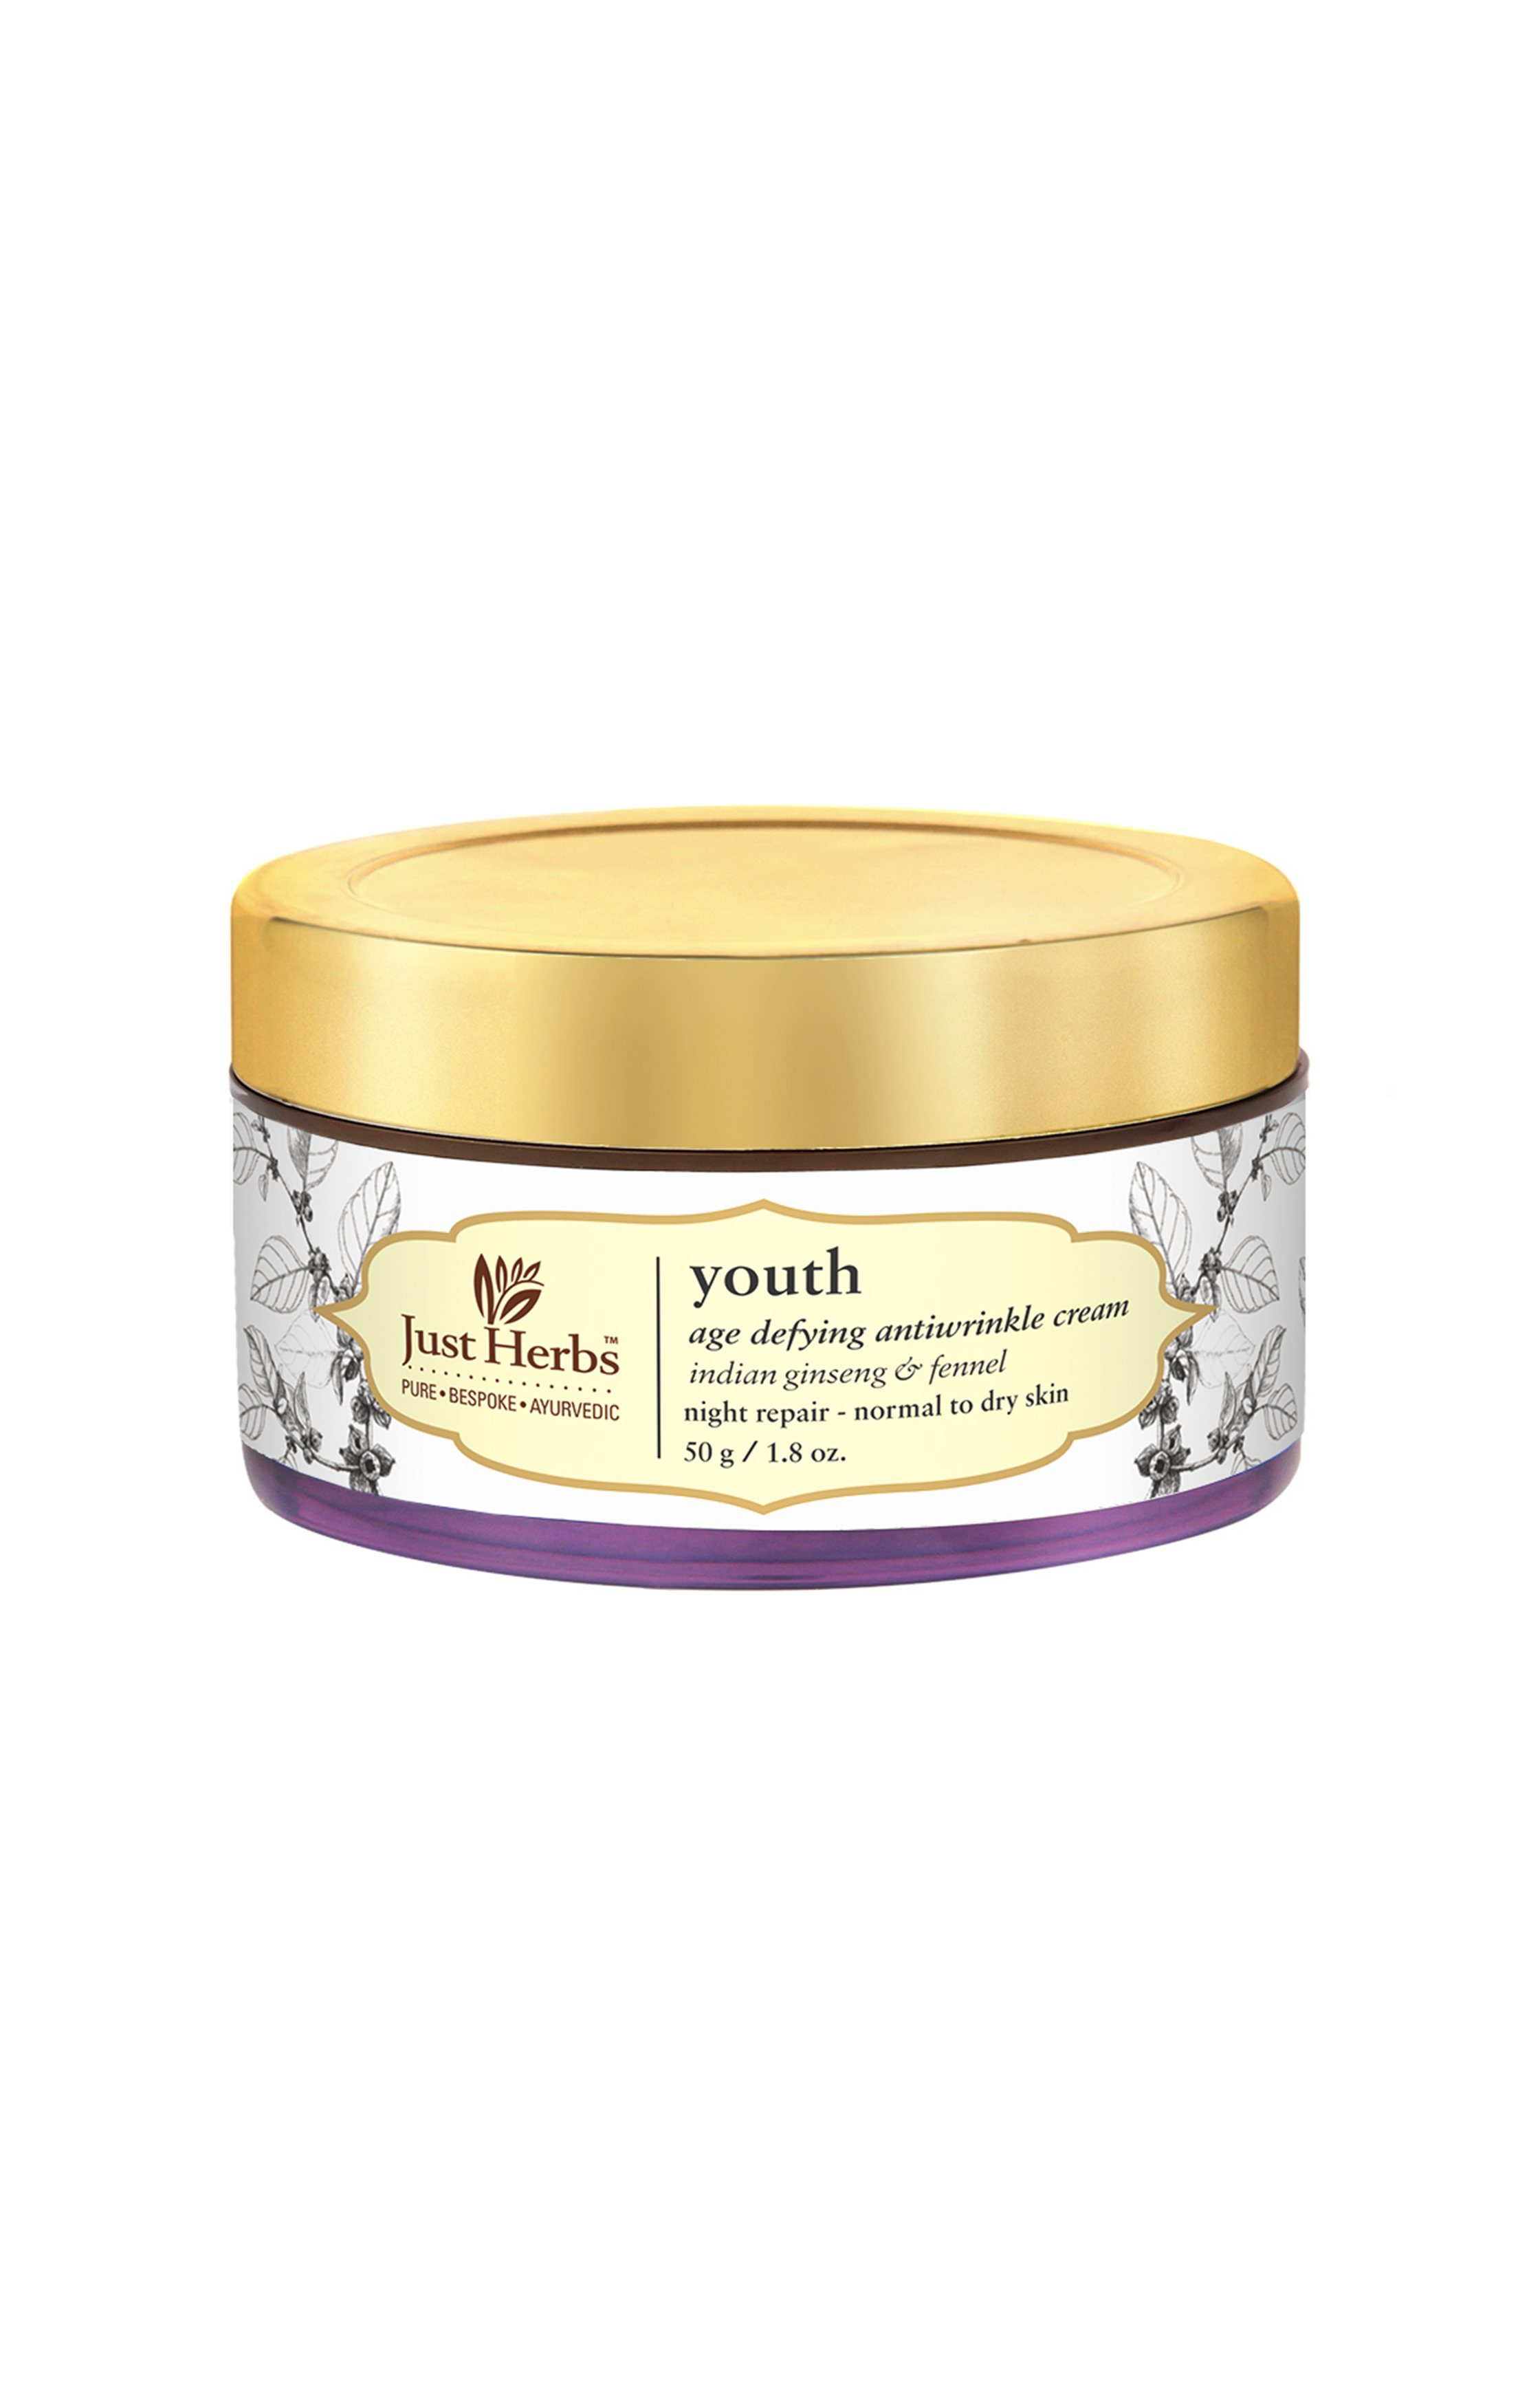 Just Herbs | Youth Antiwrinkle Cream